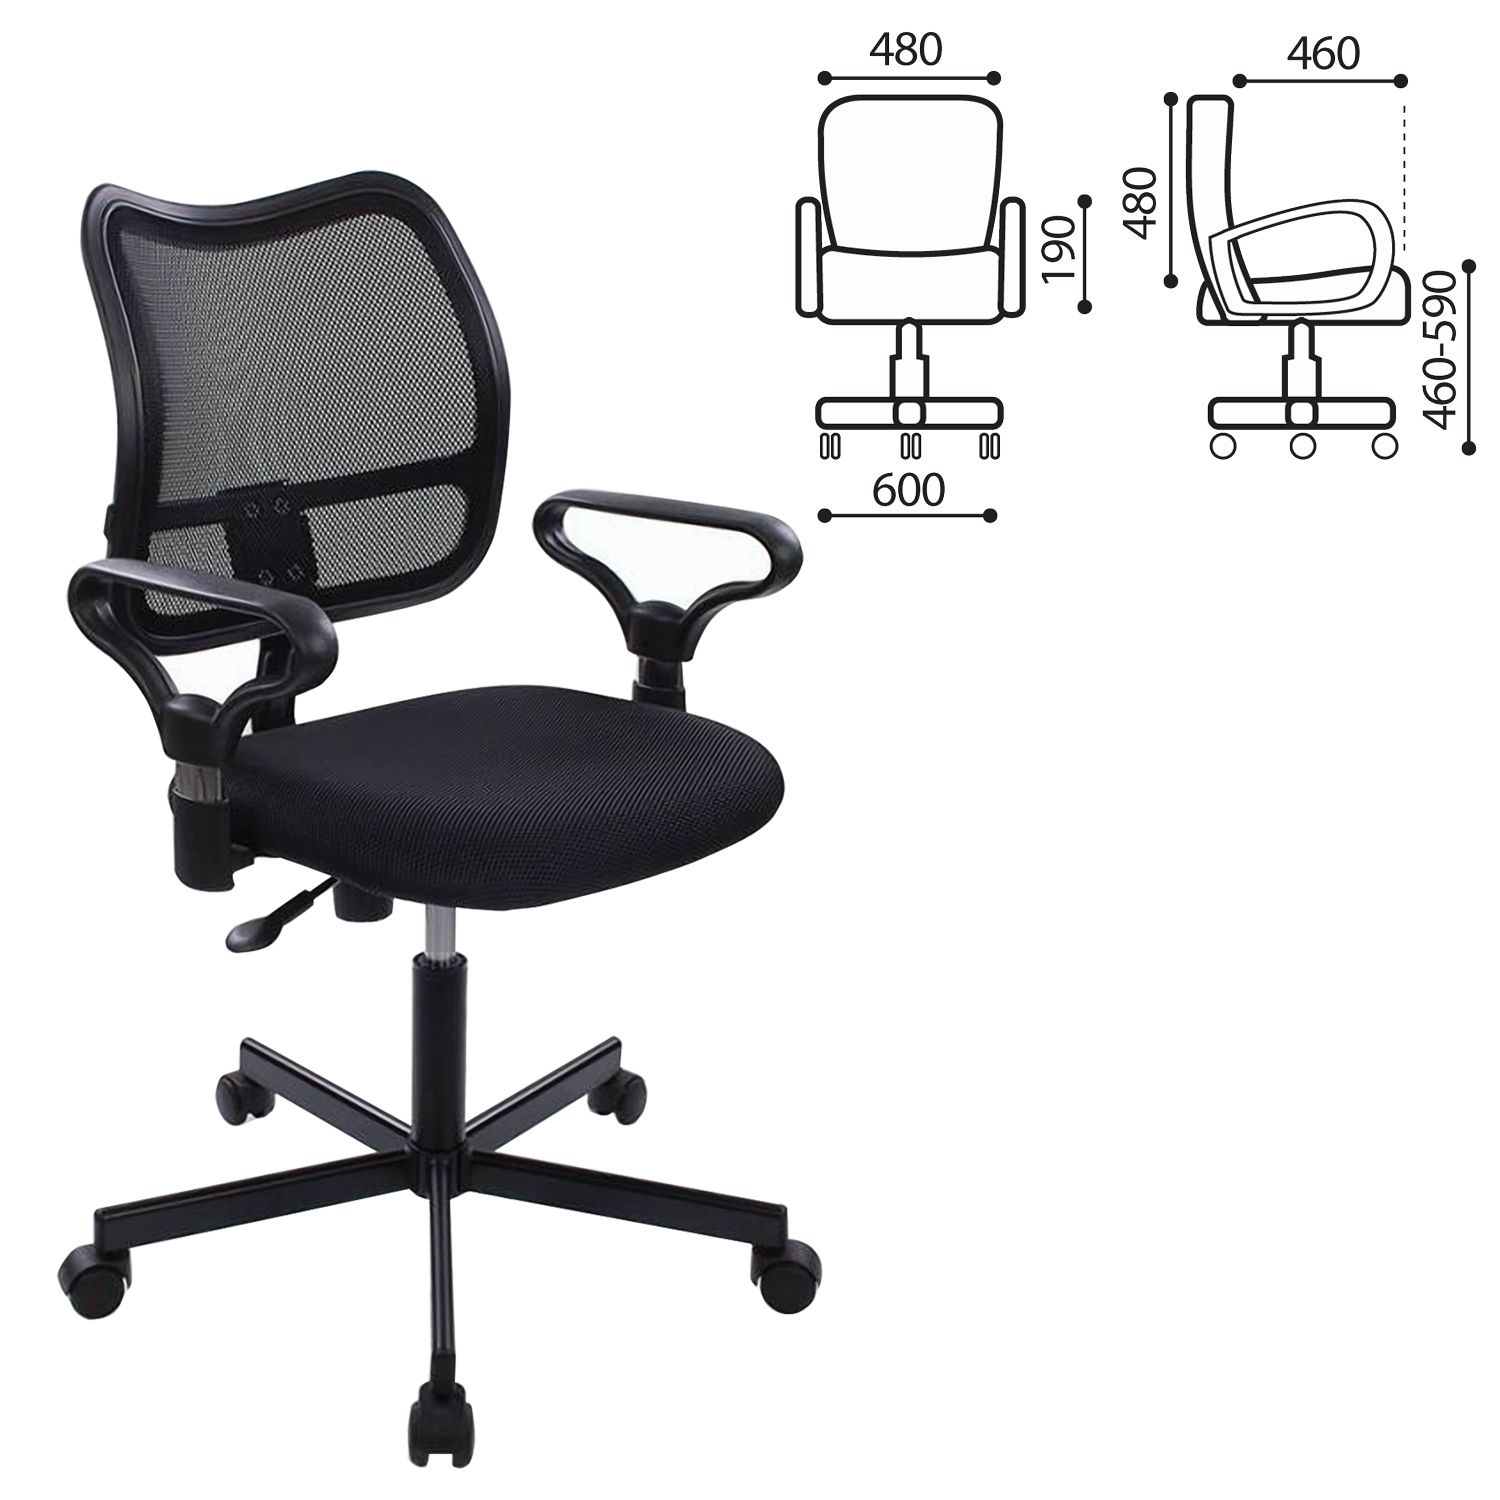 Chair CH-799M (CH-799AXSN) with armrests, black